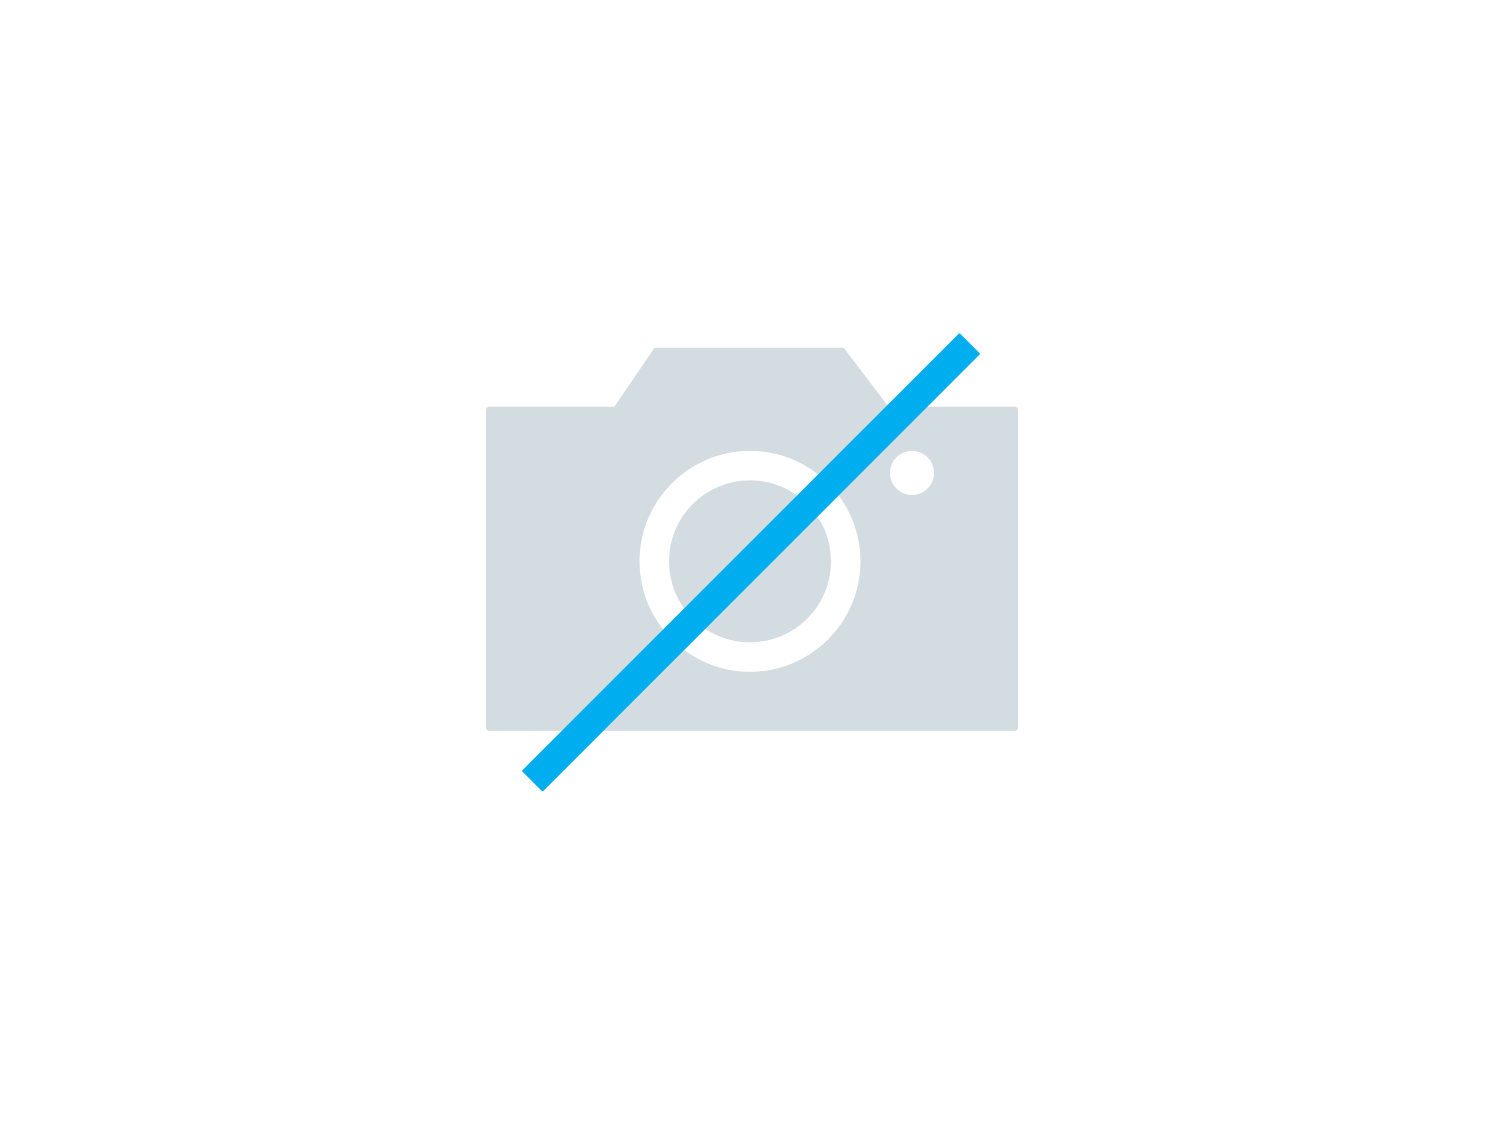 Badmat Traumbad 60x100cm pepplestone